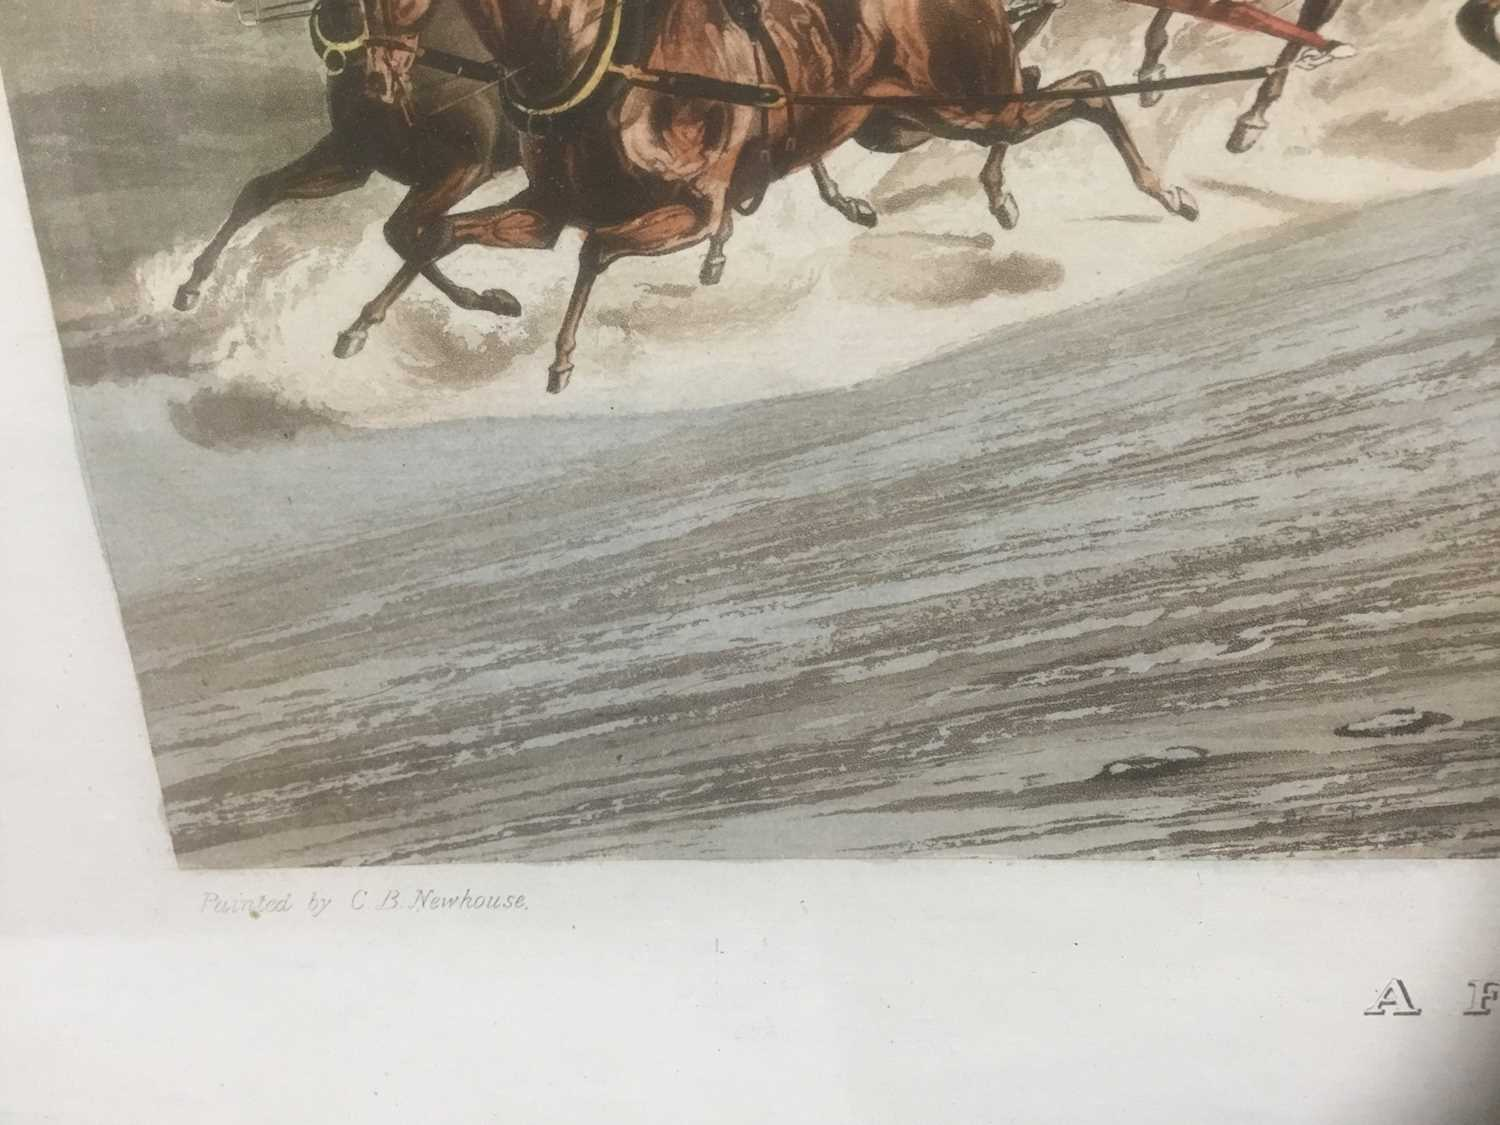 Pair of 19th century hand coloured aquatints by R. Reeves after C. Newhouse, coaching scenes entitle - Image 3 of 11